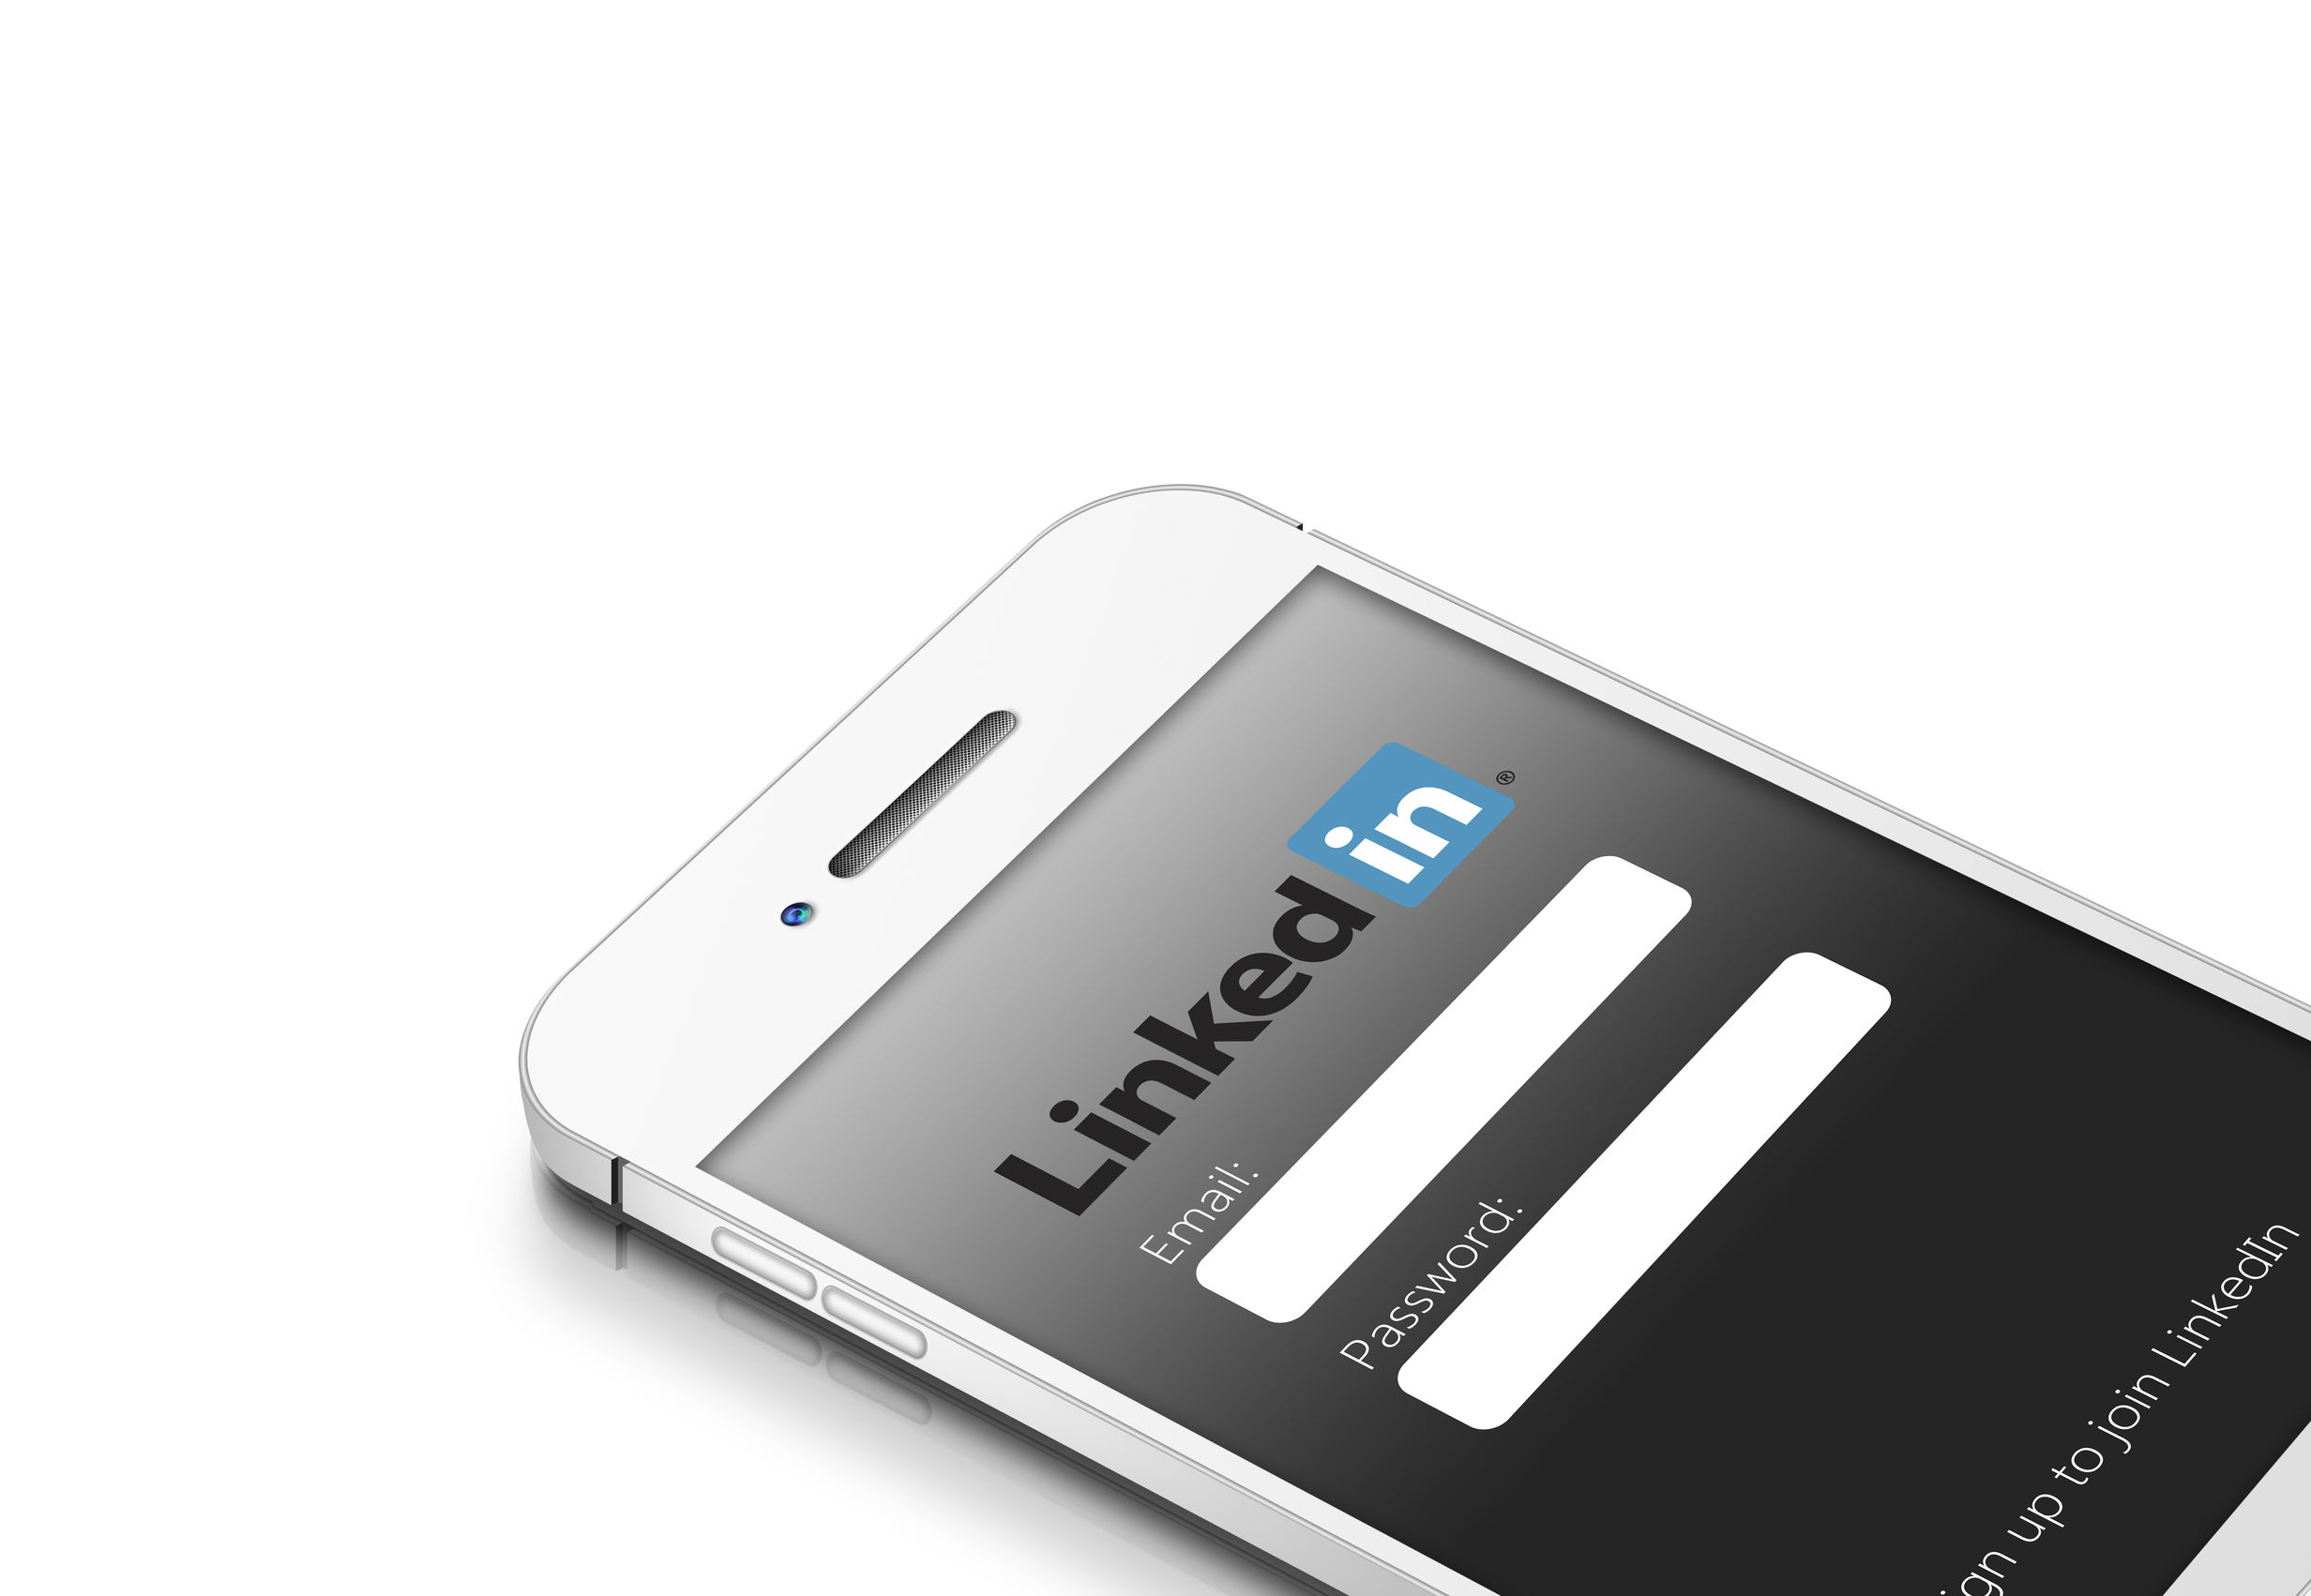 Update: LinkedIn Dodges Reference Check Lawsuit